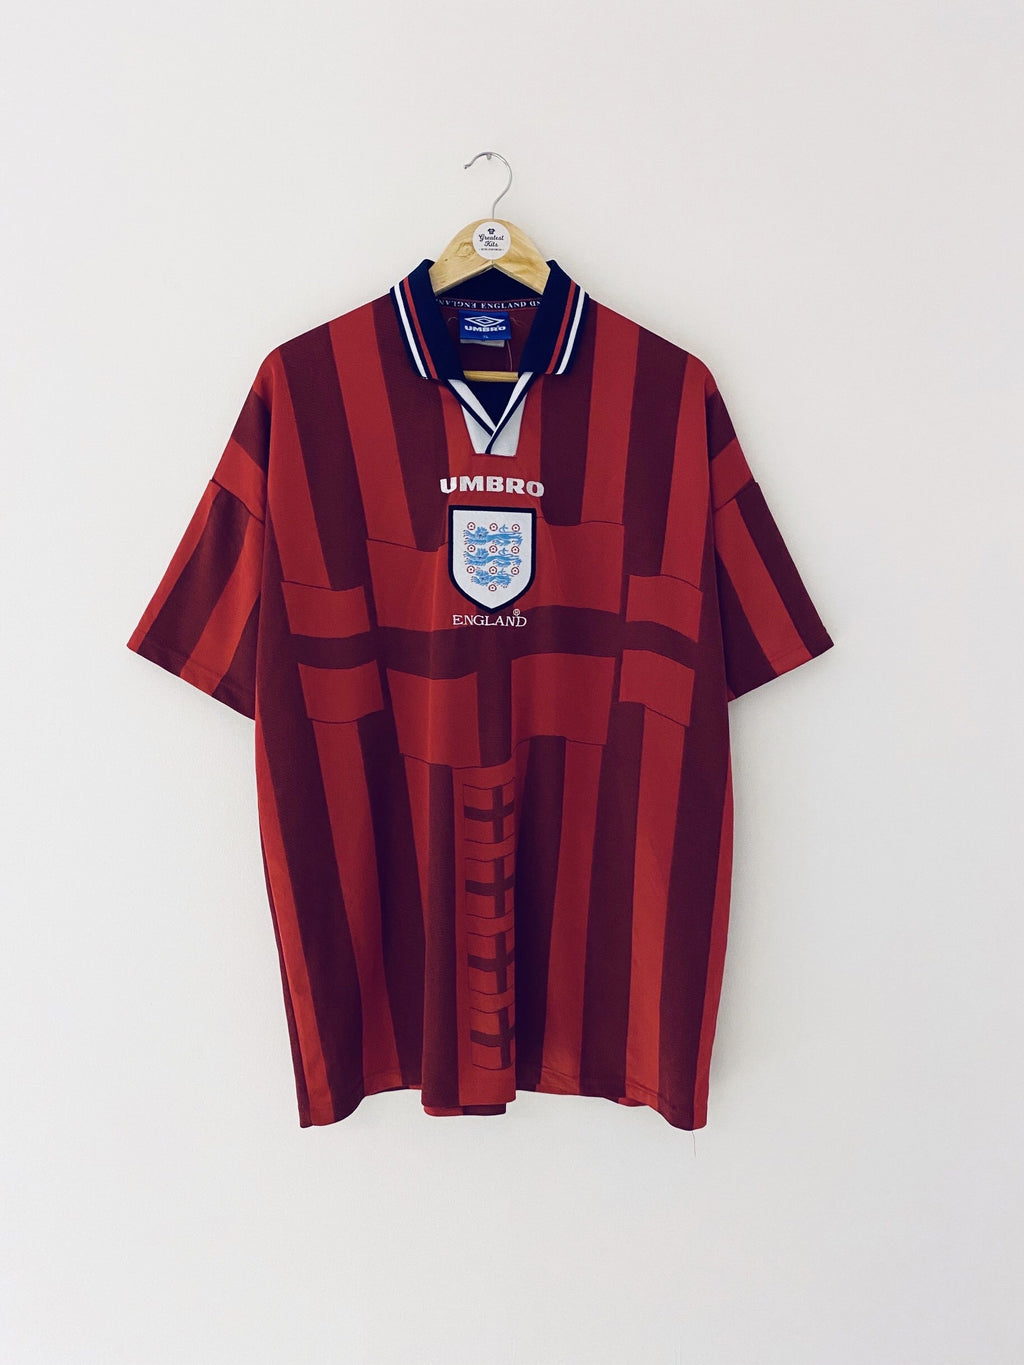 1997/99 England Away Shirt (XL) 9.5/10